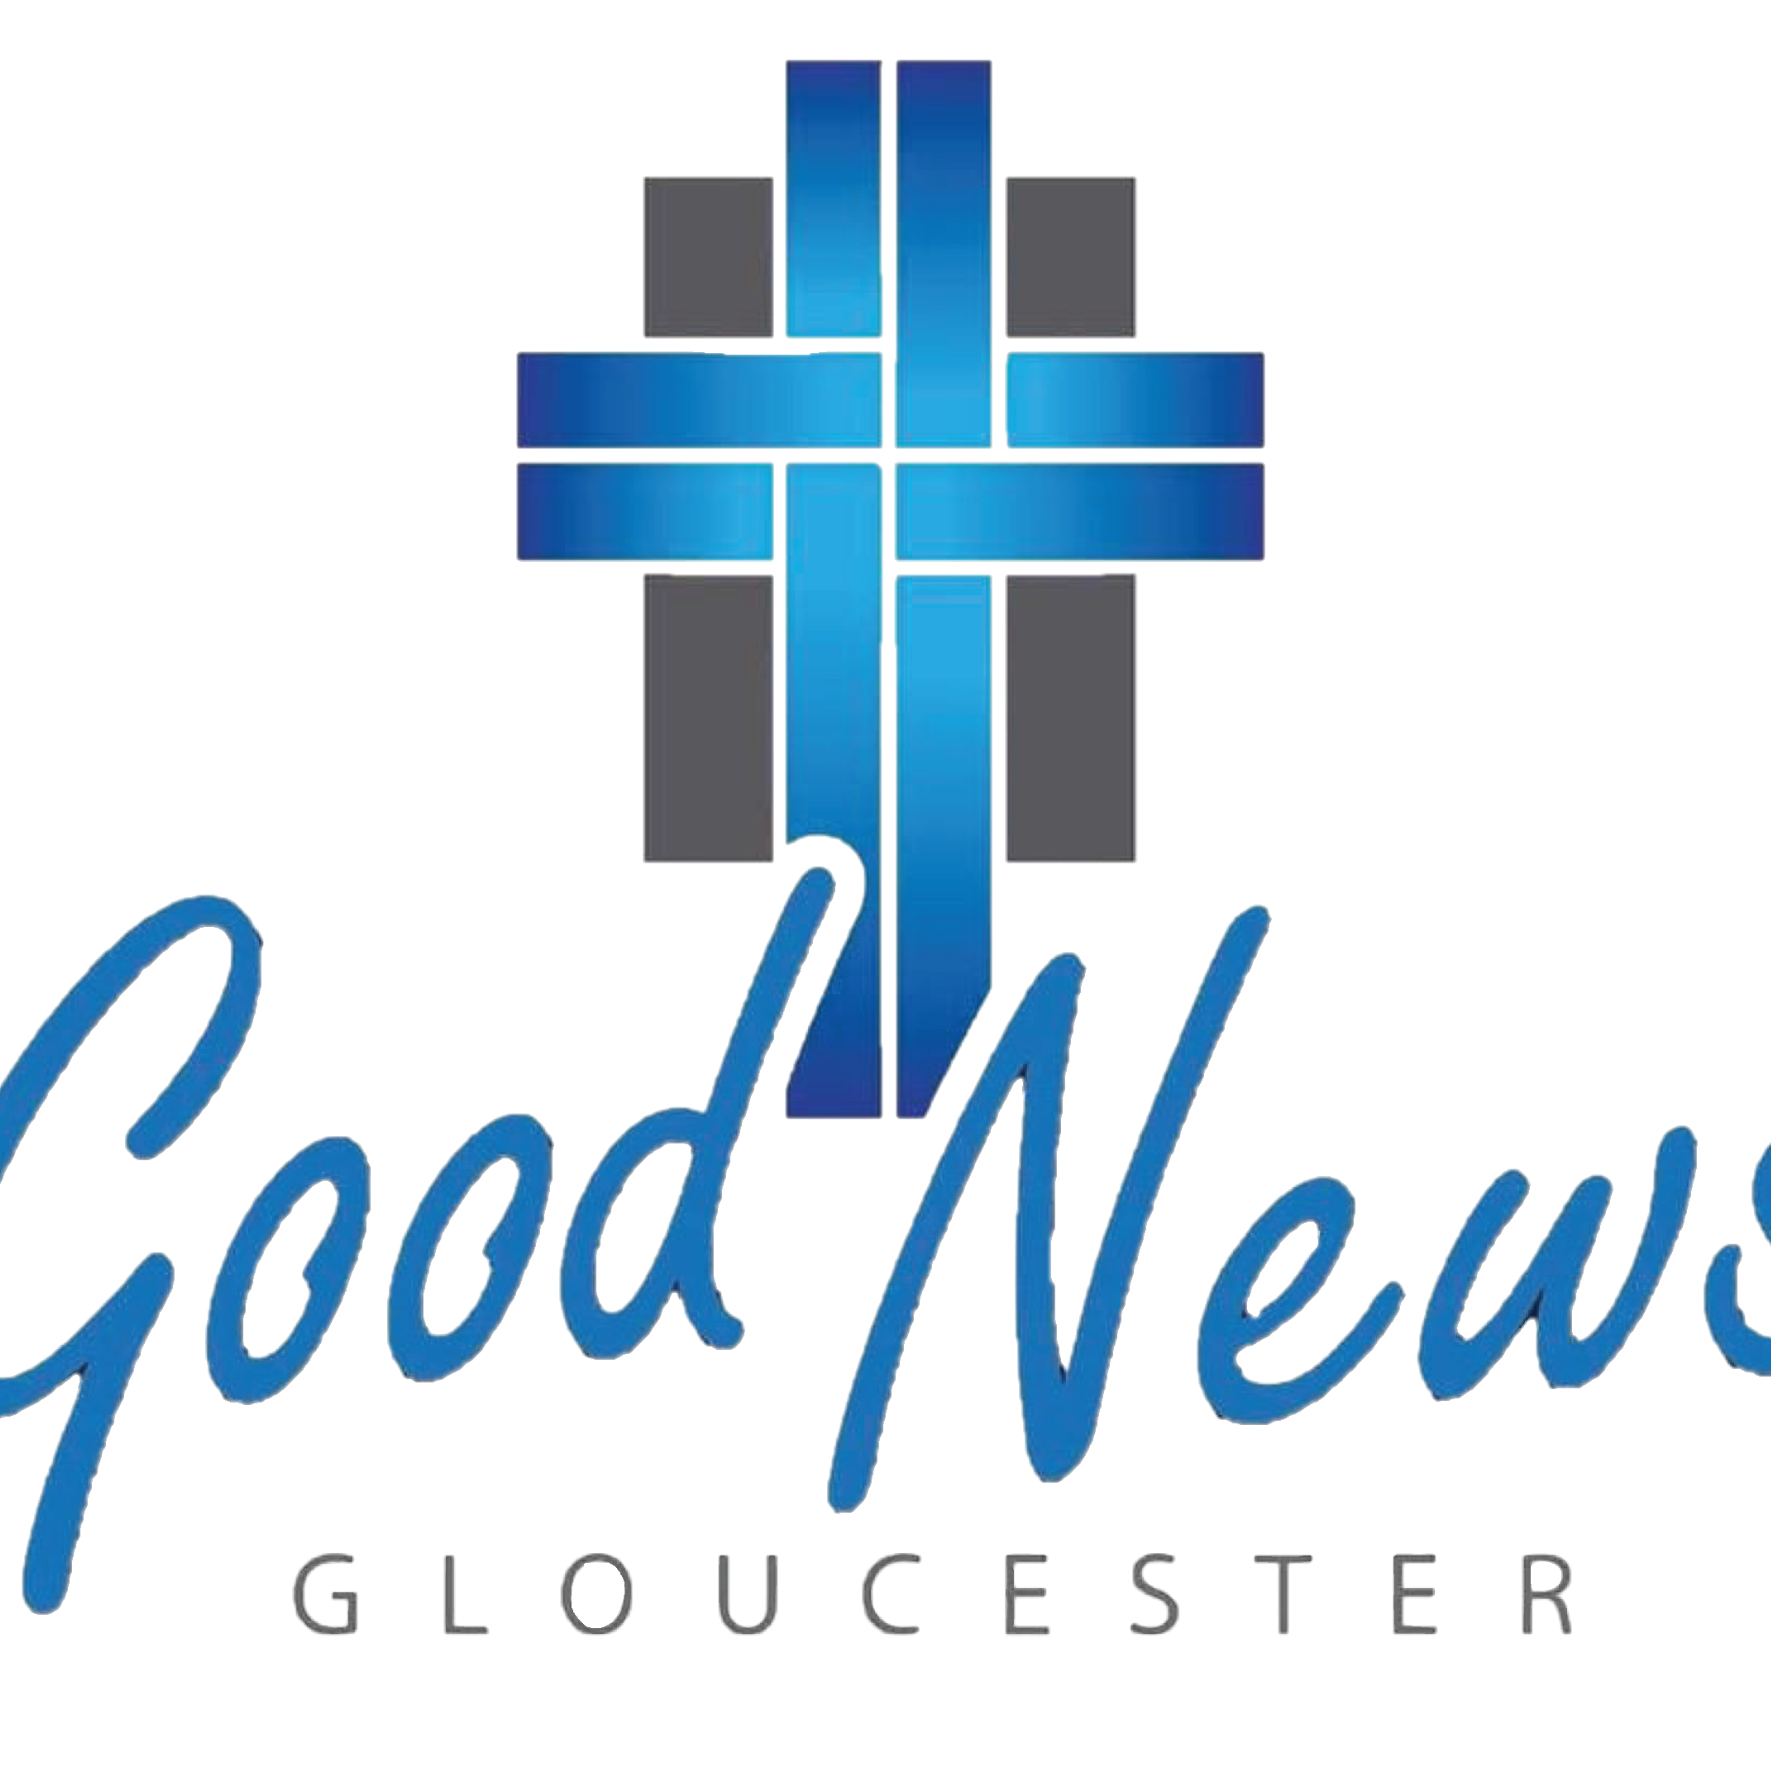 Good news Gloucester